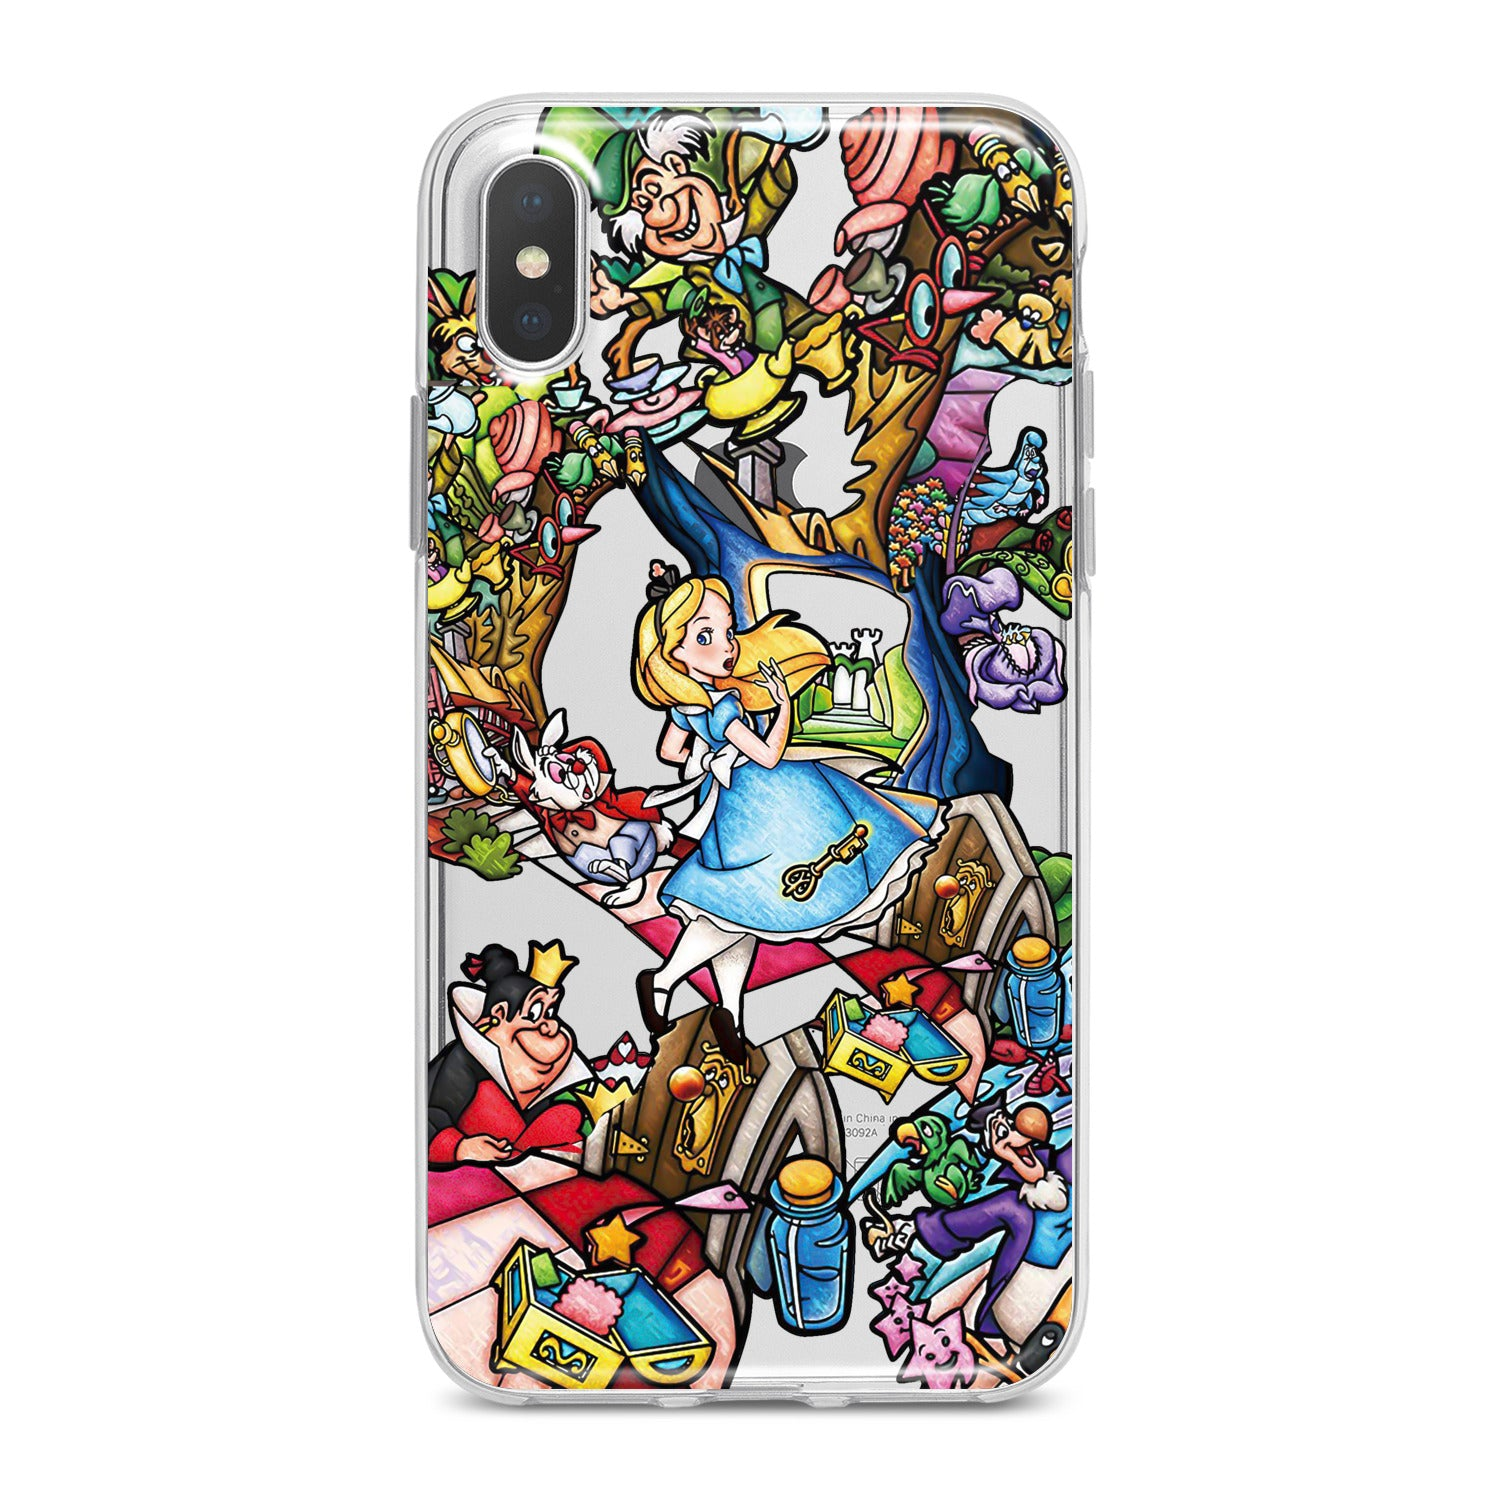 Lex Altern Alice In Wonderland Art Phone Case for your iPhone & Android phone.